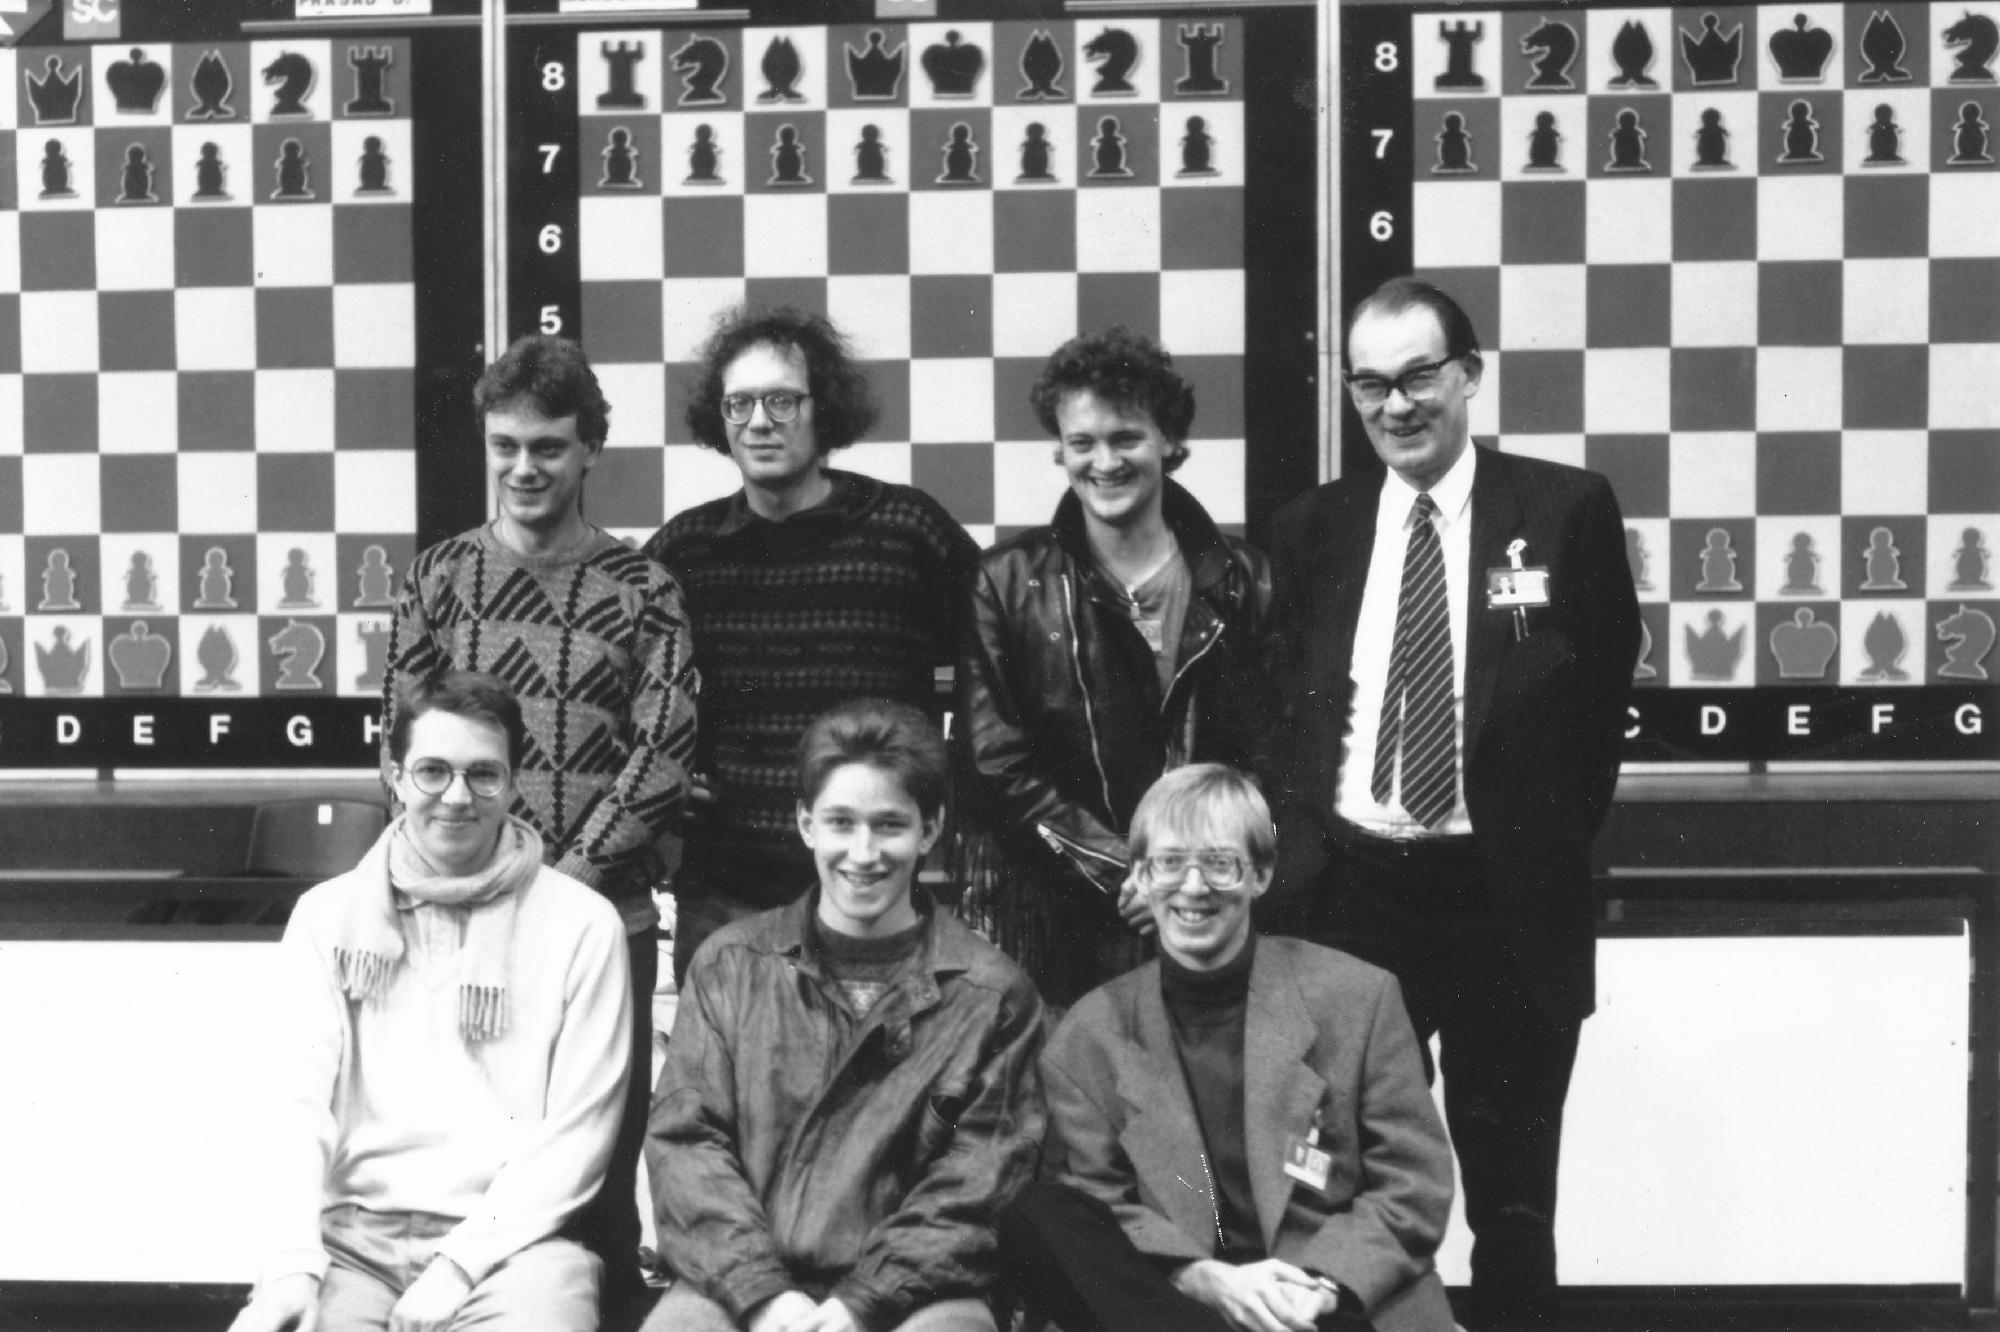 The England Team from the 1990 Novi Sad Olympiad : John Nunn, Jon Speelman, Julian Hodgson, David Anderton OBE (Captain), Nigel Short, Michael Adams and Murray Chandler